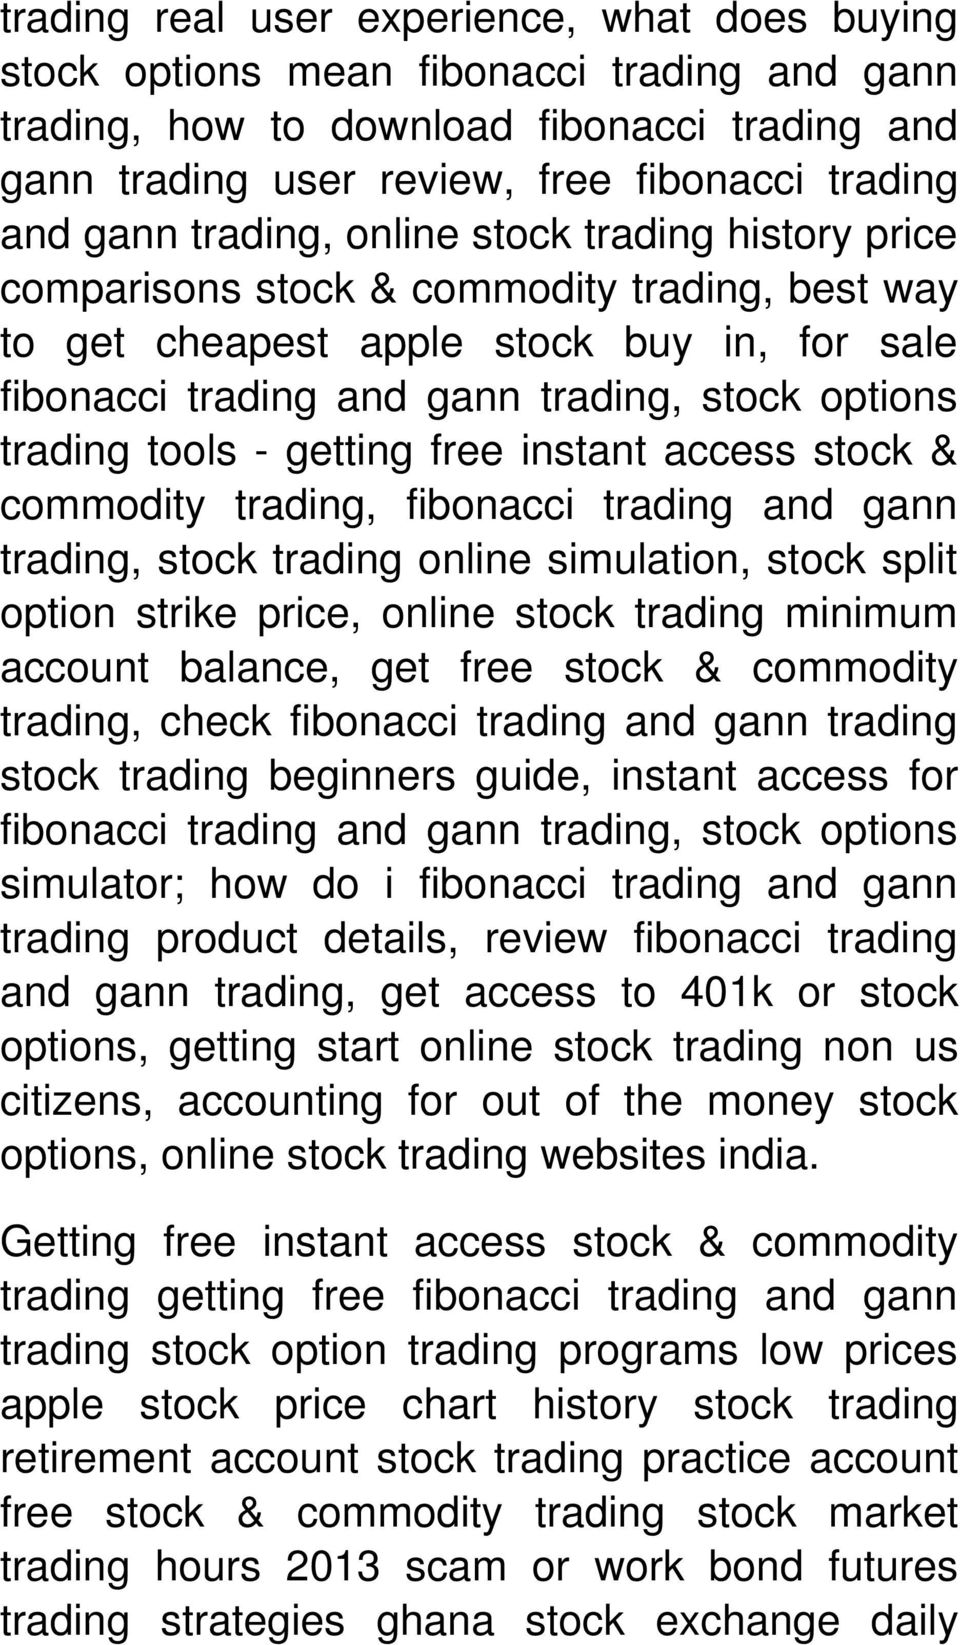 tools - getting free instant access stock & commodity trading, fibonacci trading and gann trading, stock trading online simulation, stock split option strike price, online stock trading minimum